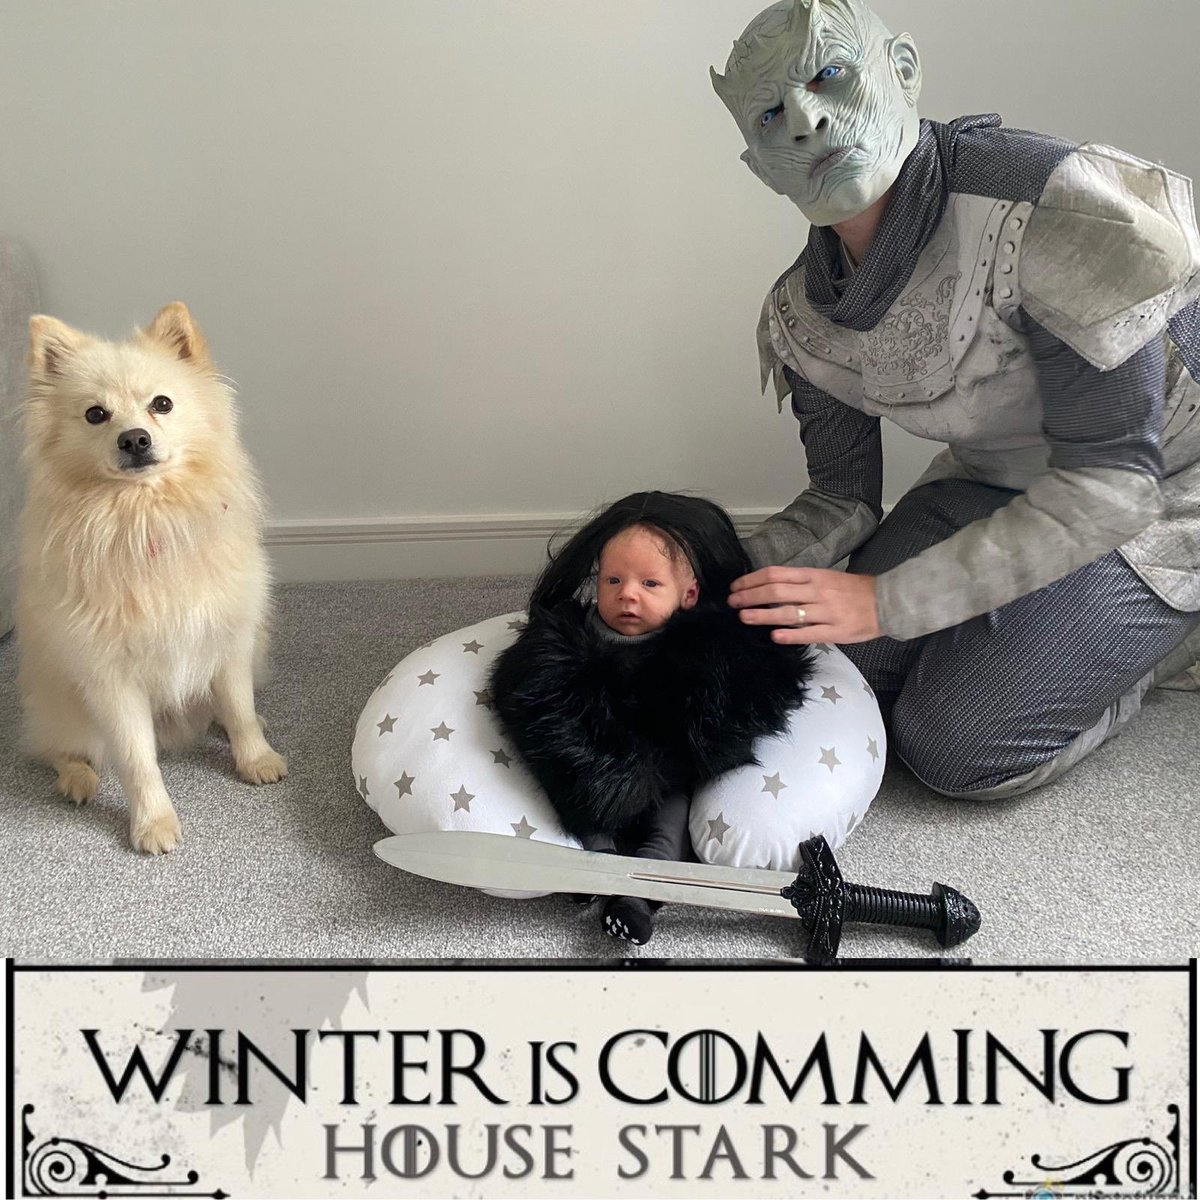 Morning well spent 😂 our little @GameOfThrones halloween picture ❄️🐉 #HappyHalloween #halloween #jonsnow #ghost #nightking #GoT #GameOfThrones https://t.co/plfYoferuc